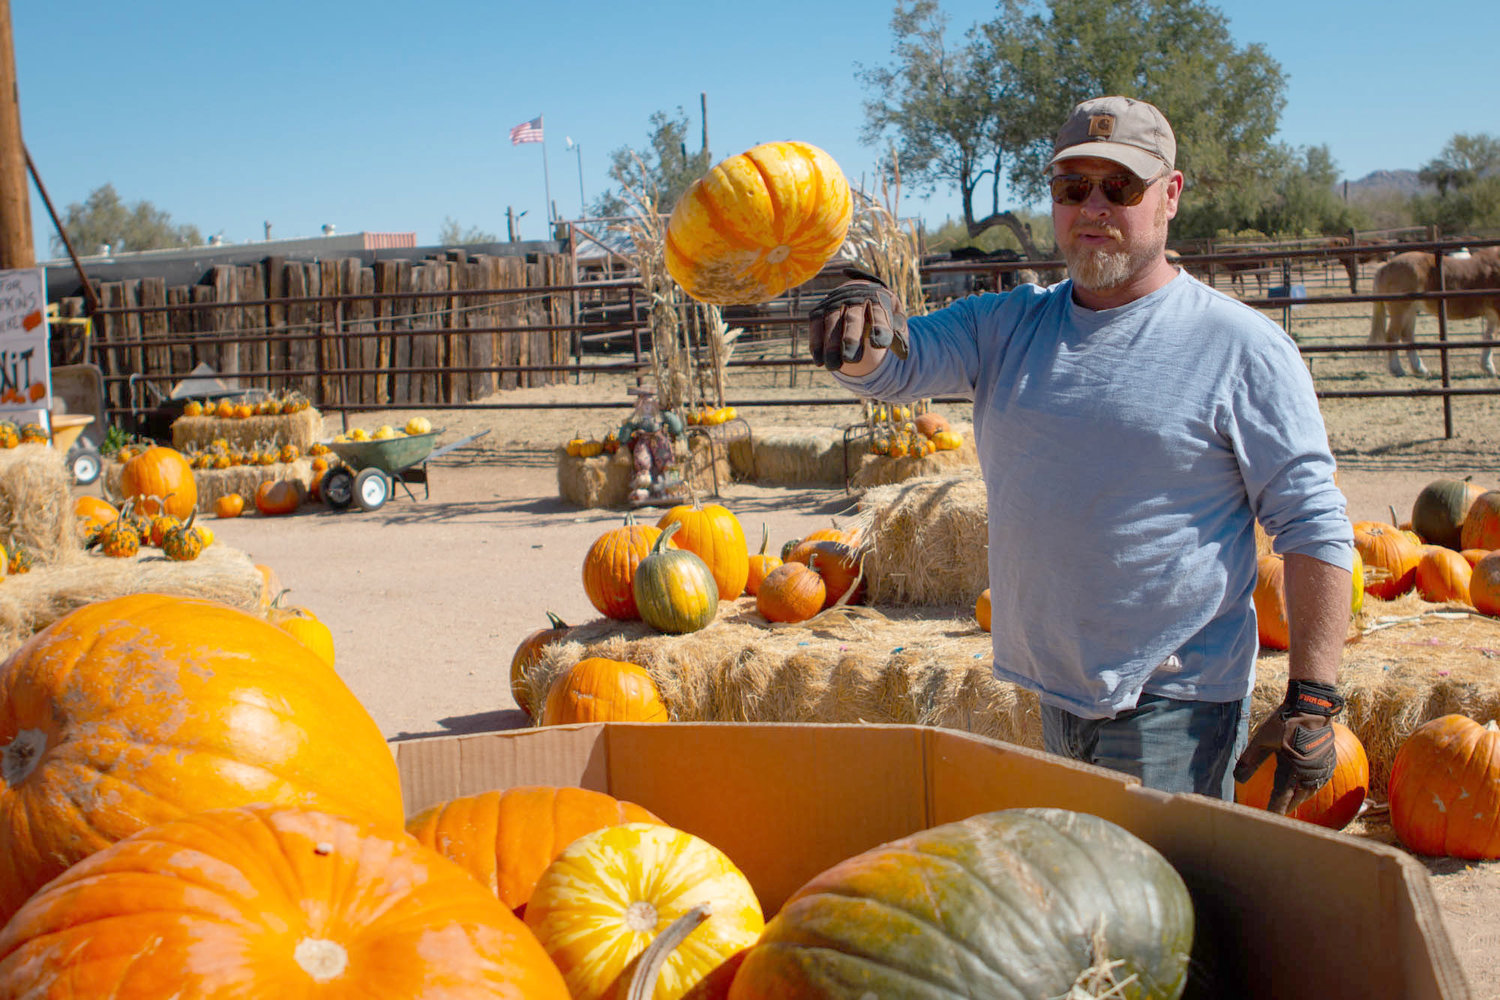 Brian Gates throws leftover Halloween pumpkins into a bin to be recycled and donated at MacDonald's Ranch in Scottsdale, Arizona, on Friday, Nov. 1, 2019.